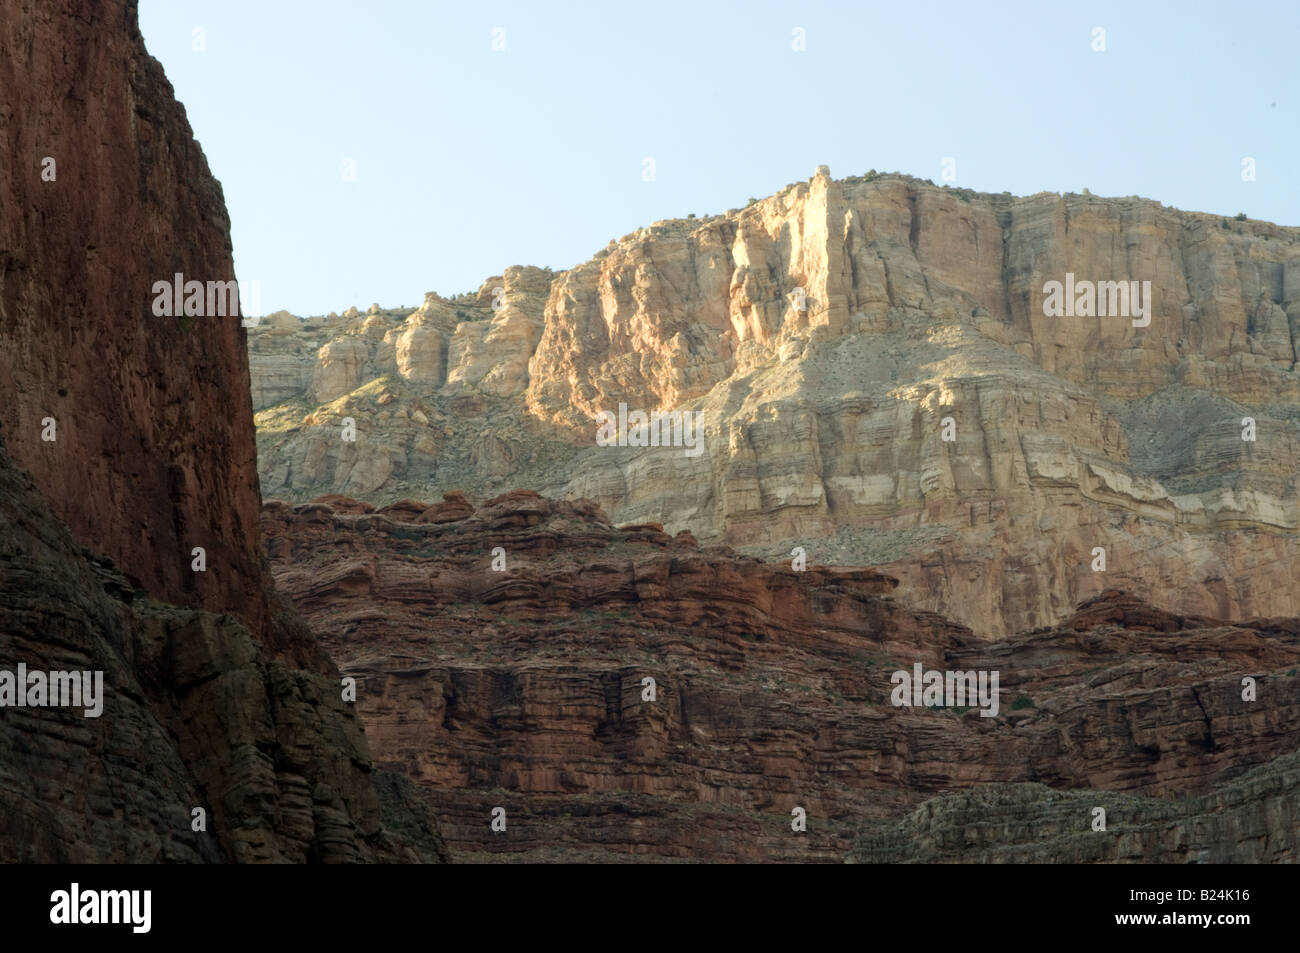 Sunset in the Grand Canyon - Stock Image